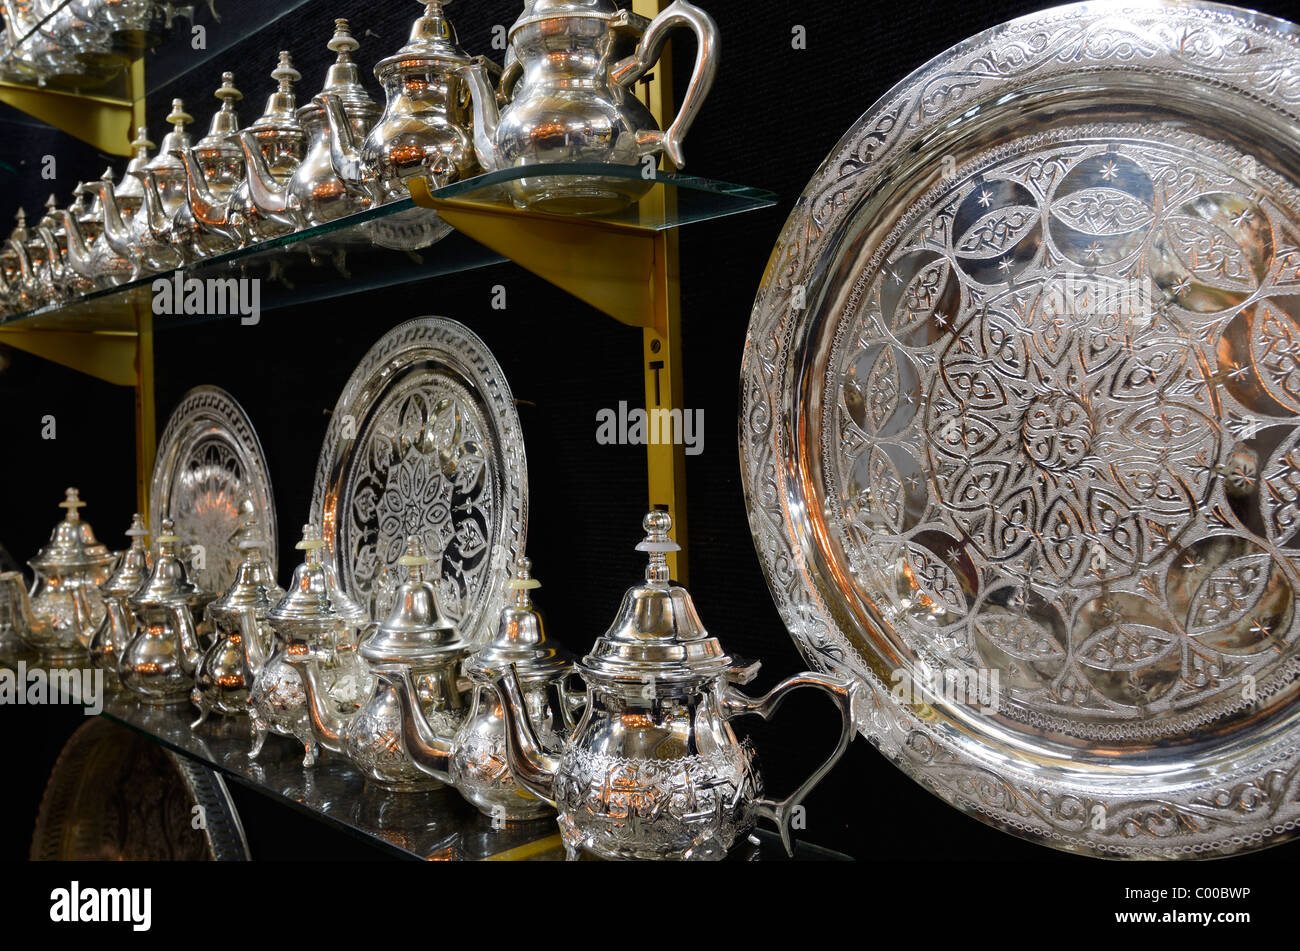 Metalware shop with silver teapots and plates with intricate design engraving Fez Morocco - Stock Image